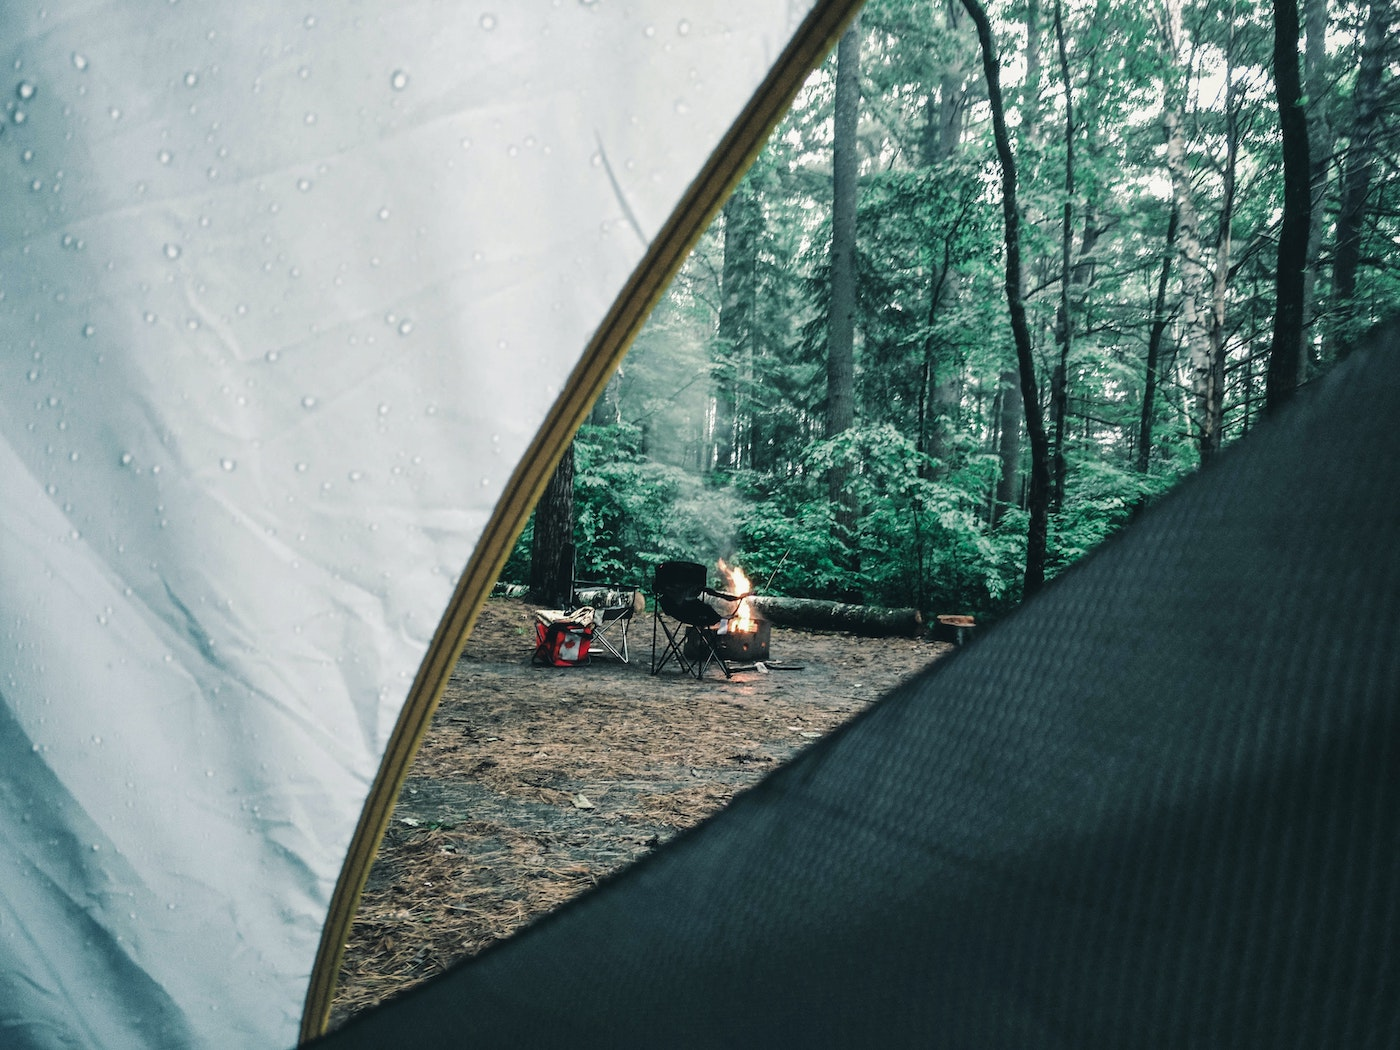 the inside of the tent, looking out at a campfire